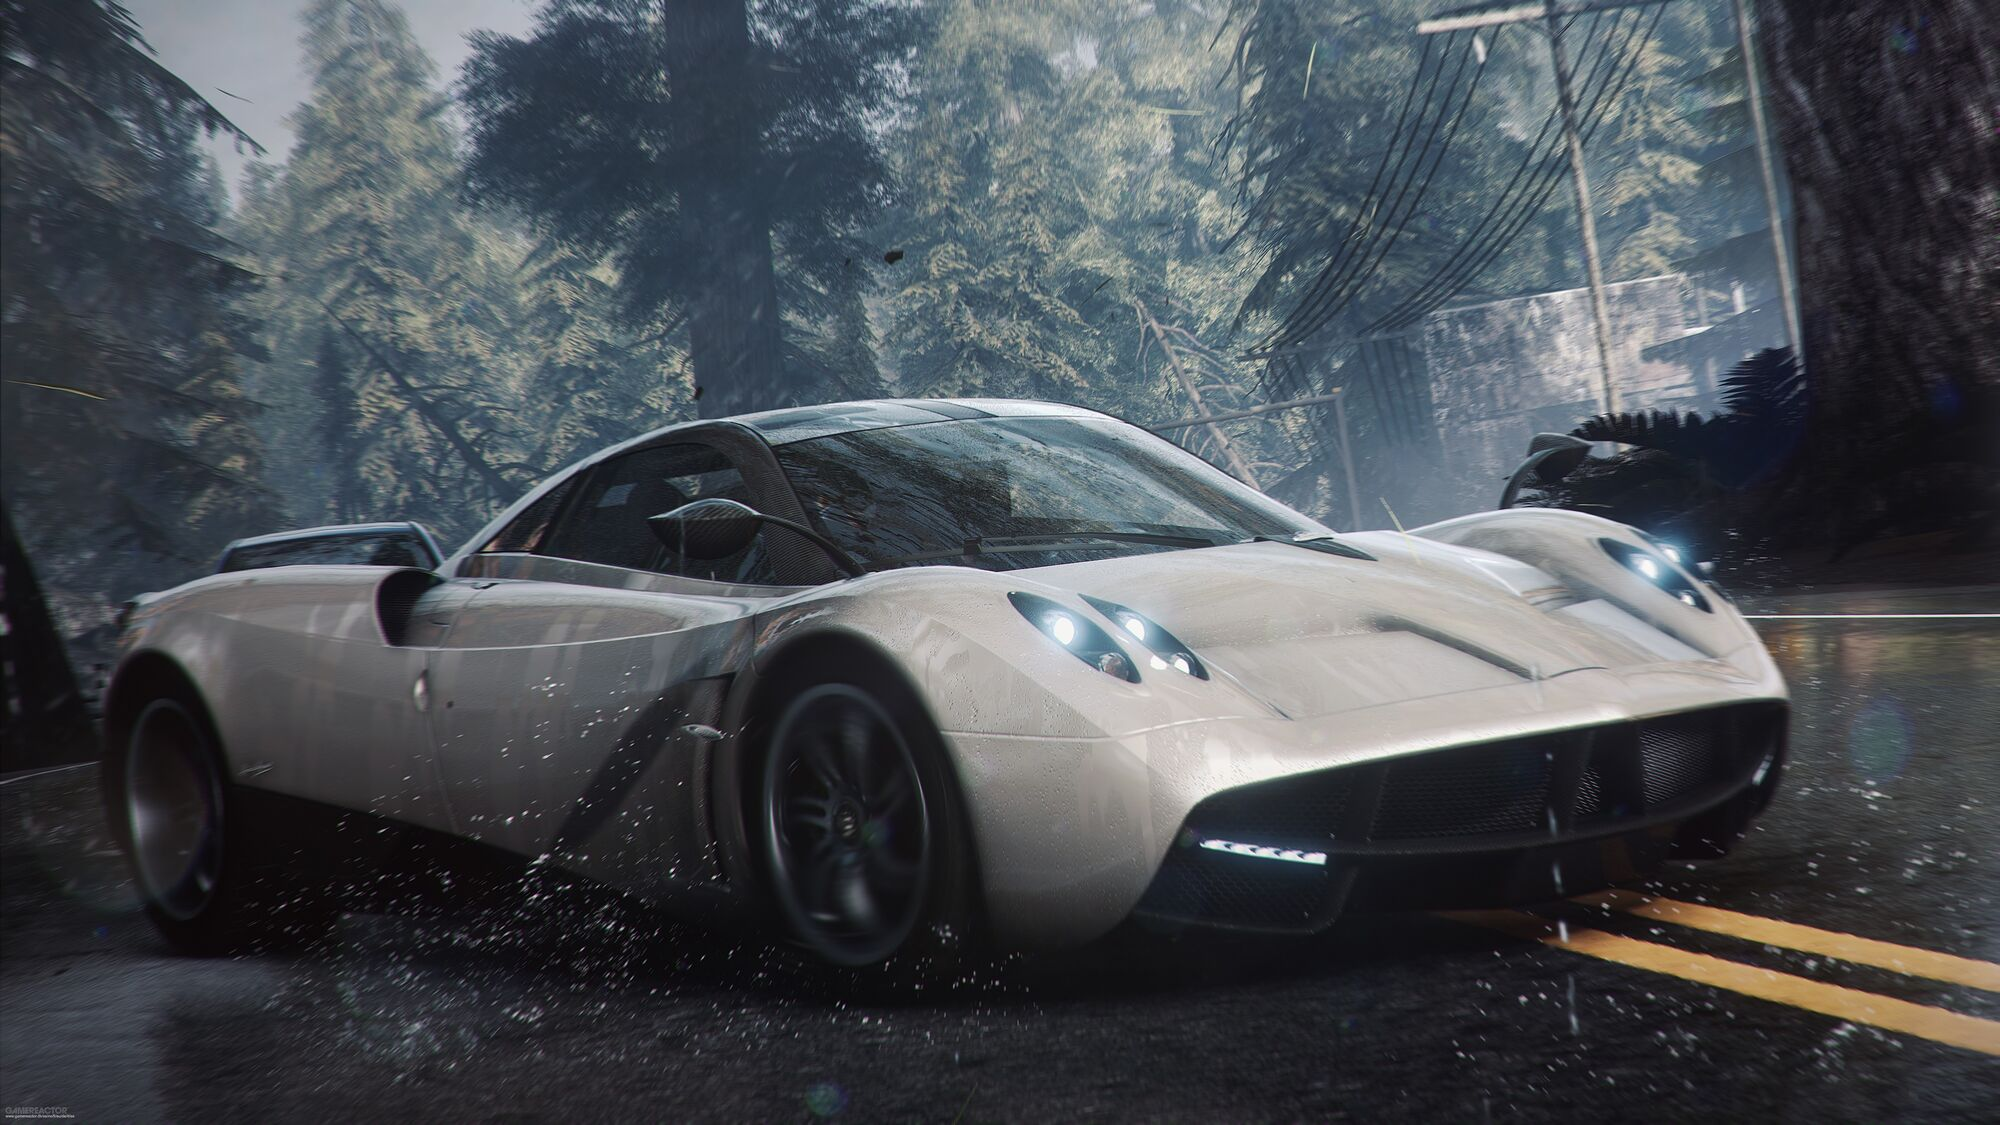 Pagani huayra need for speed wiki fandom powered by wikia vanachro Image collections